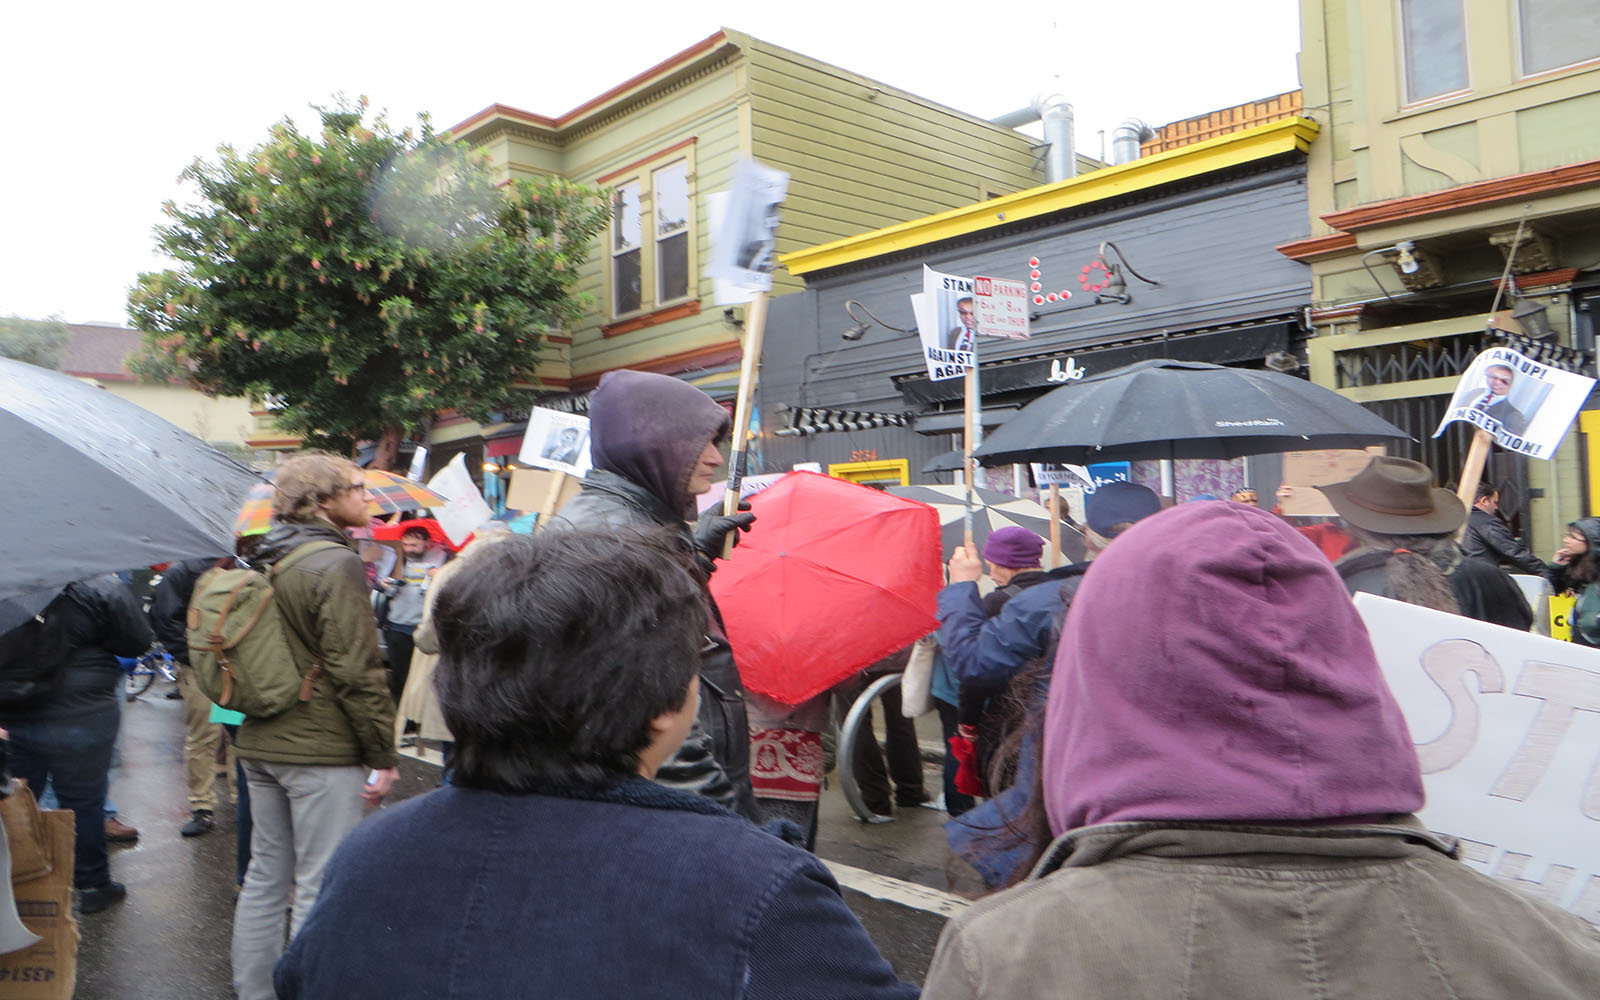 Anti-Eviction Protest Targets Landlord